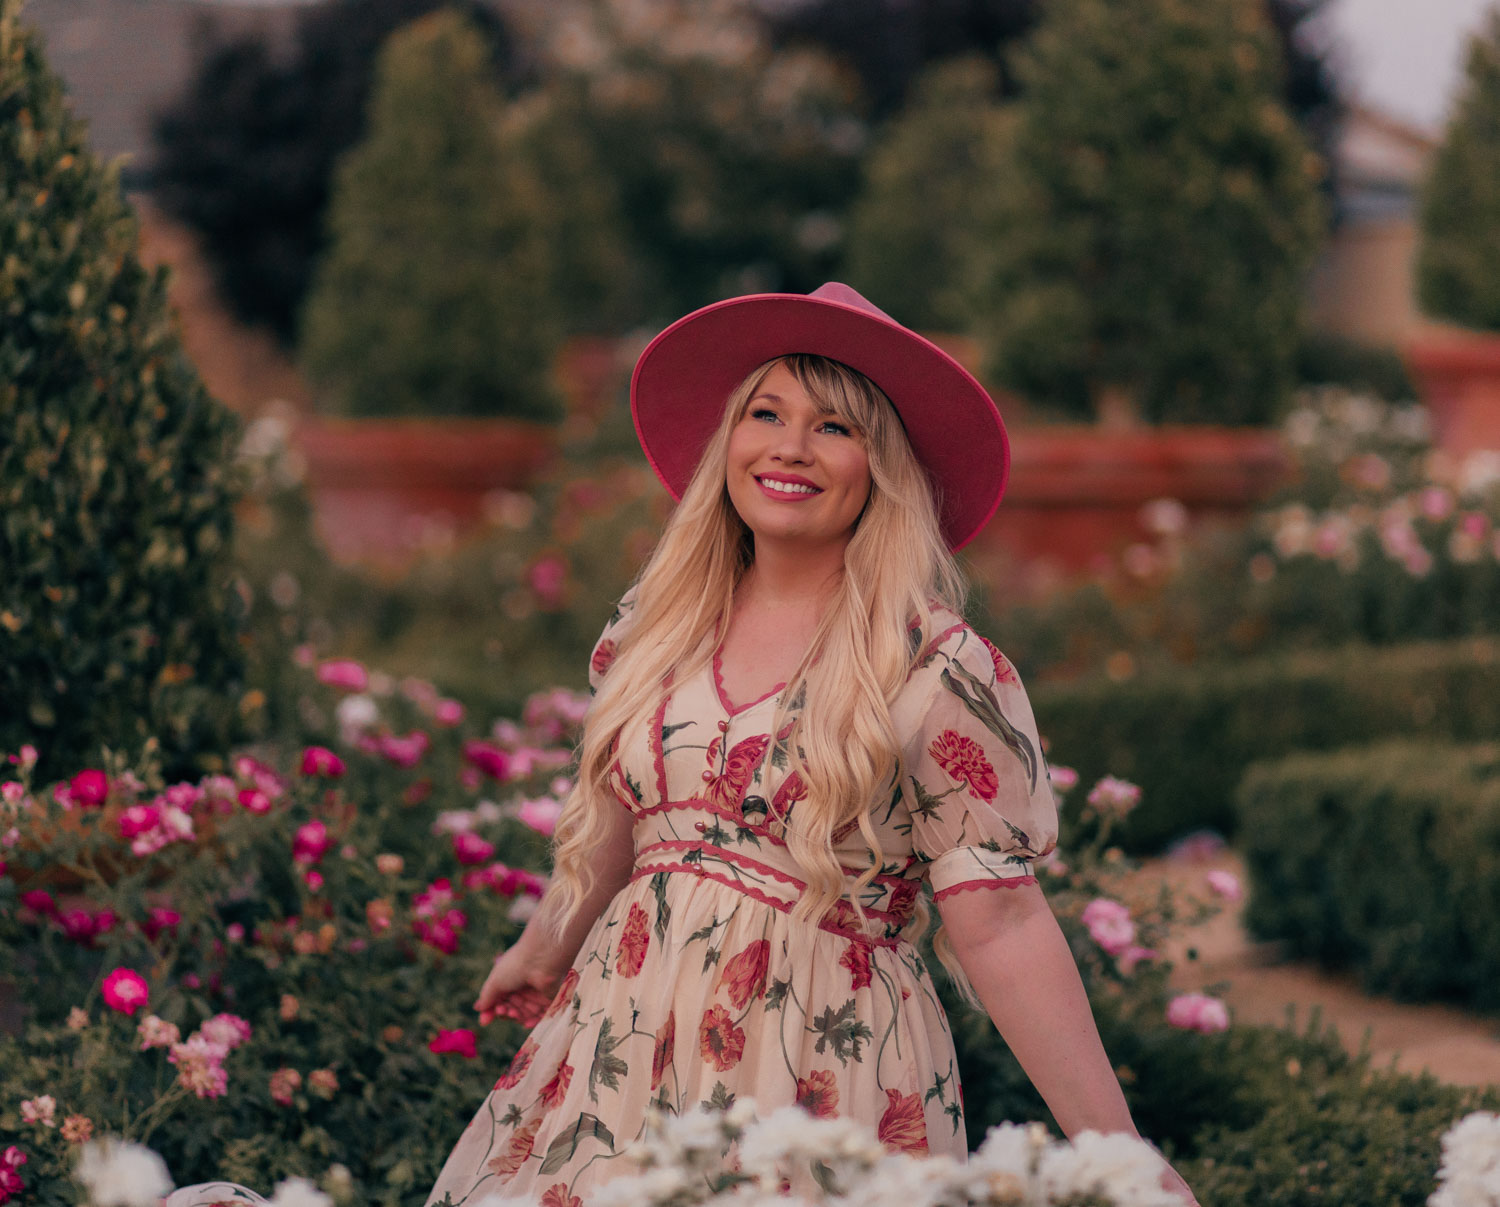 Feminine Fashion Blogger Elizabeth Hugen of Lizzie in Lace shares how to Transition a Floral Dress to Fall in 3 Ways with this gorgeous lack of color rancher hat